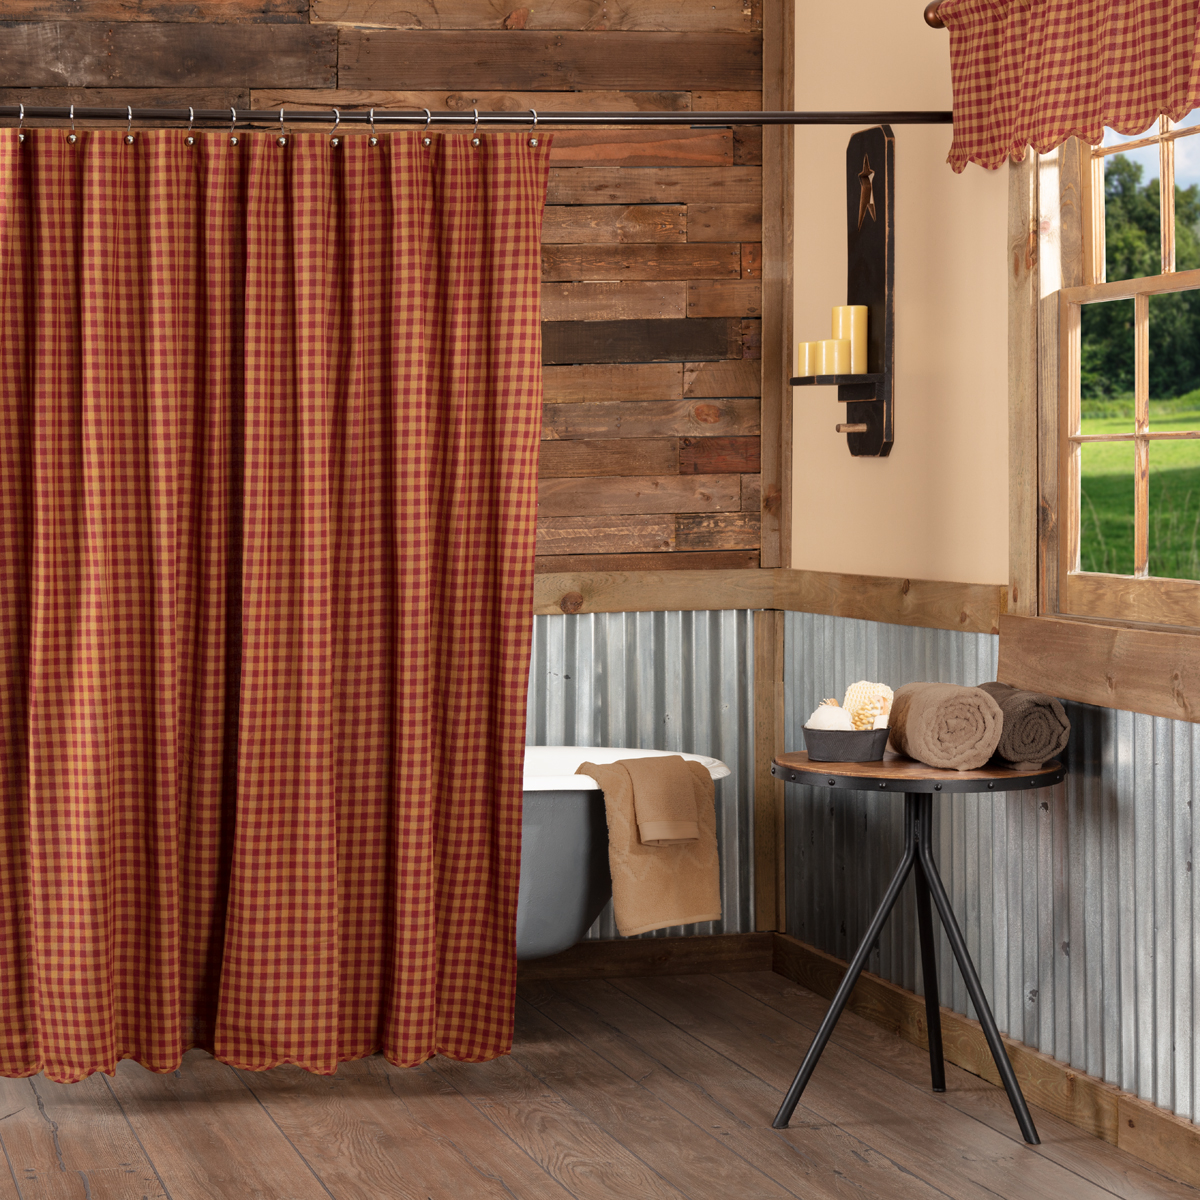 Burgundy Check Shower Curtain Retro Barn Country Linens